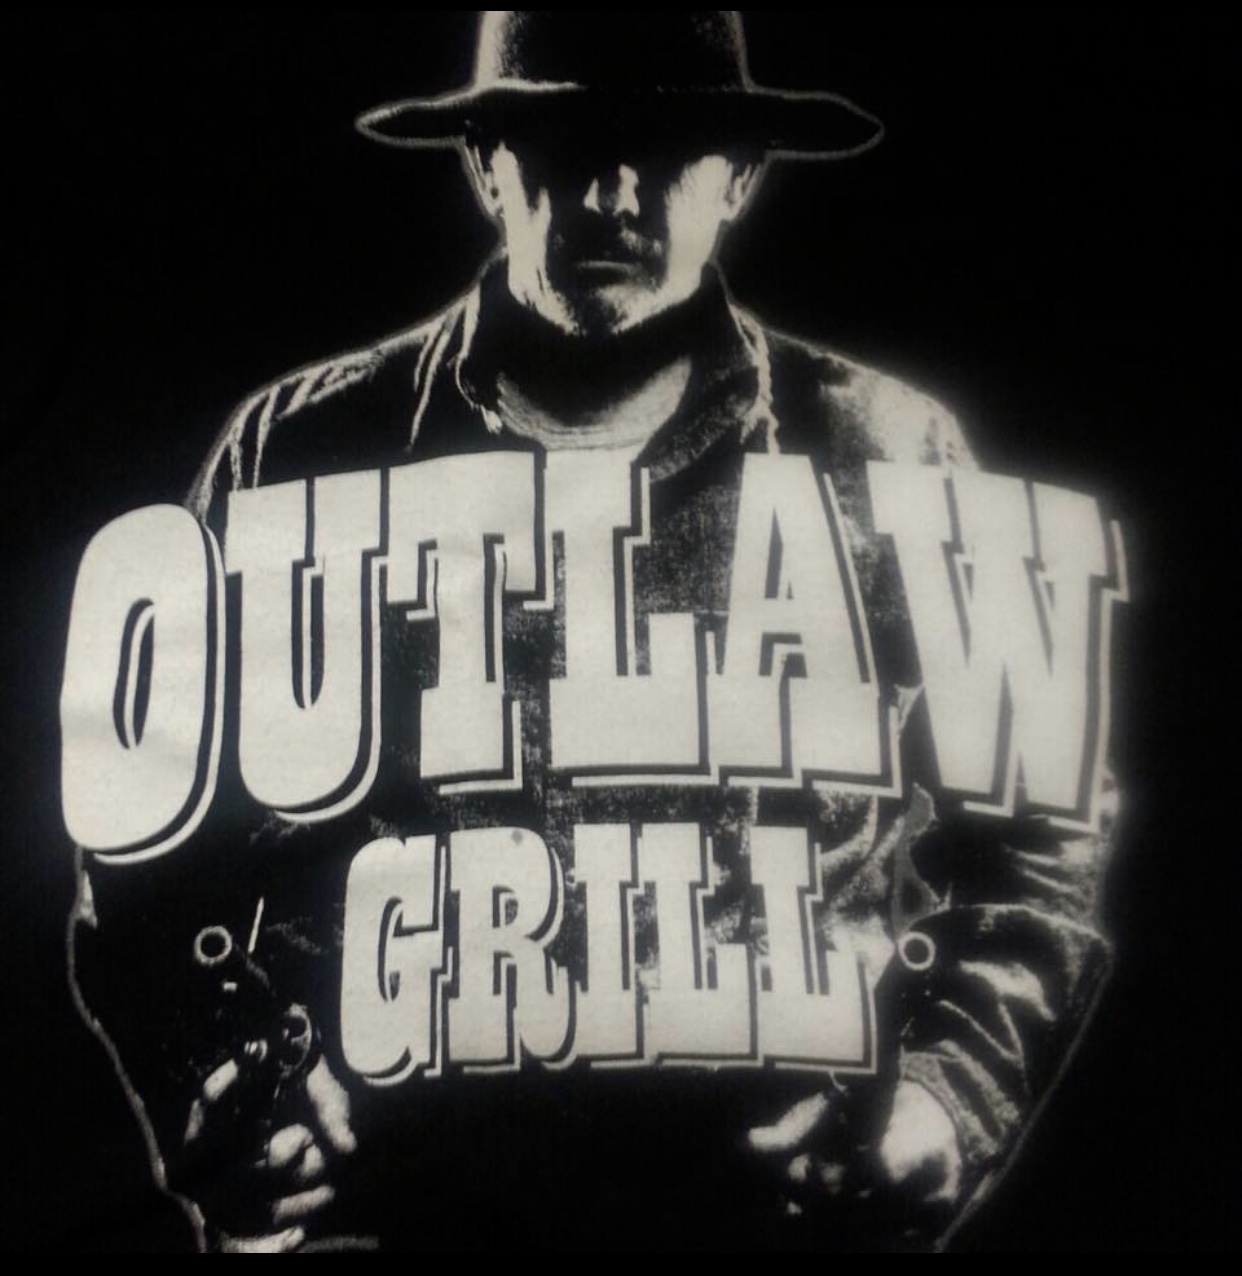 Outlaw Grill